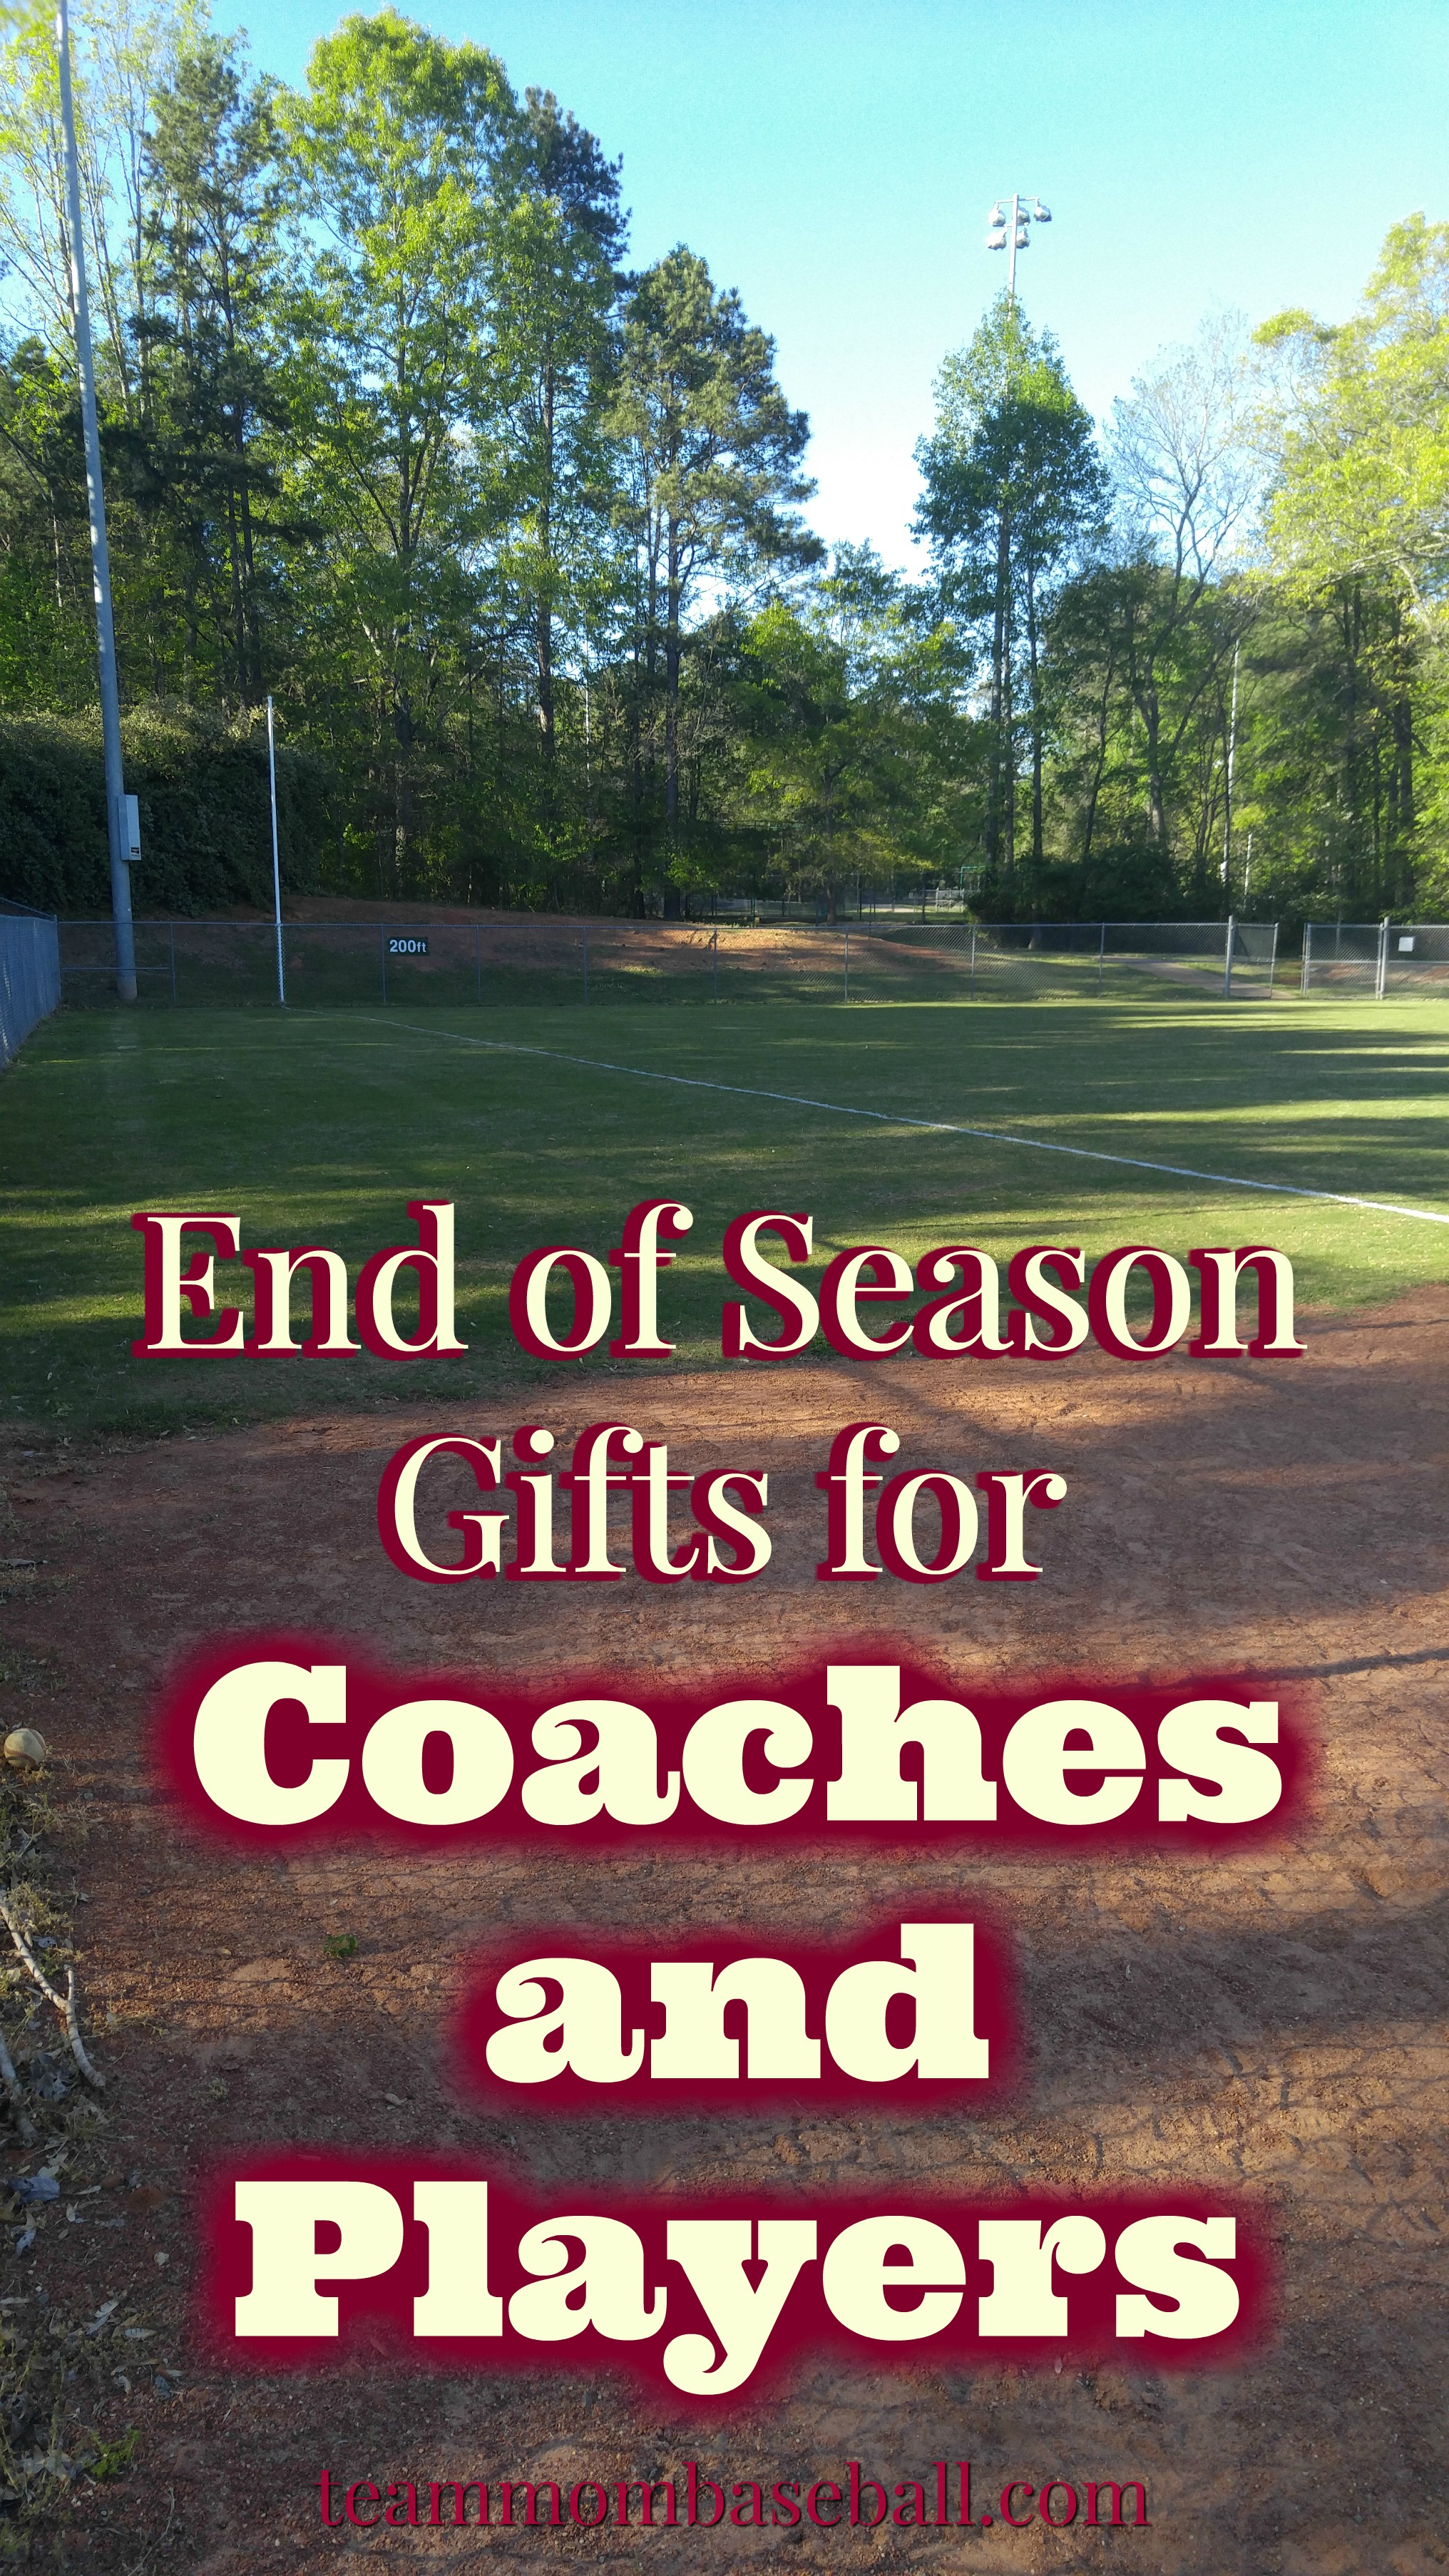 Gift Ideas for Your Favorite Coach – Team Mom Baseball